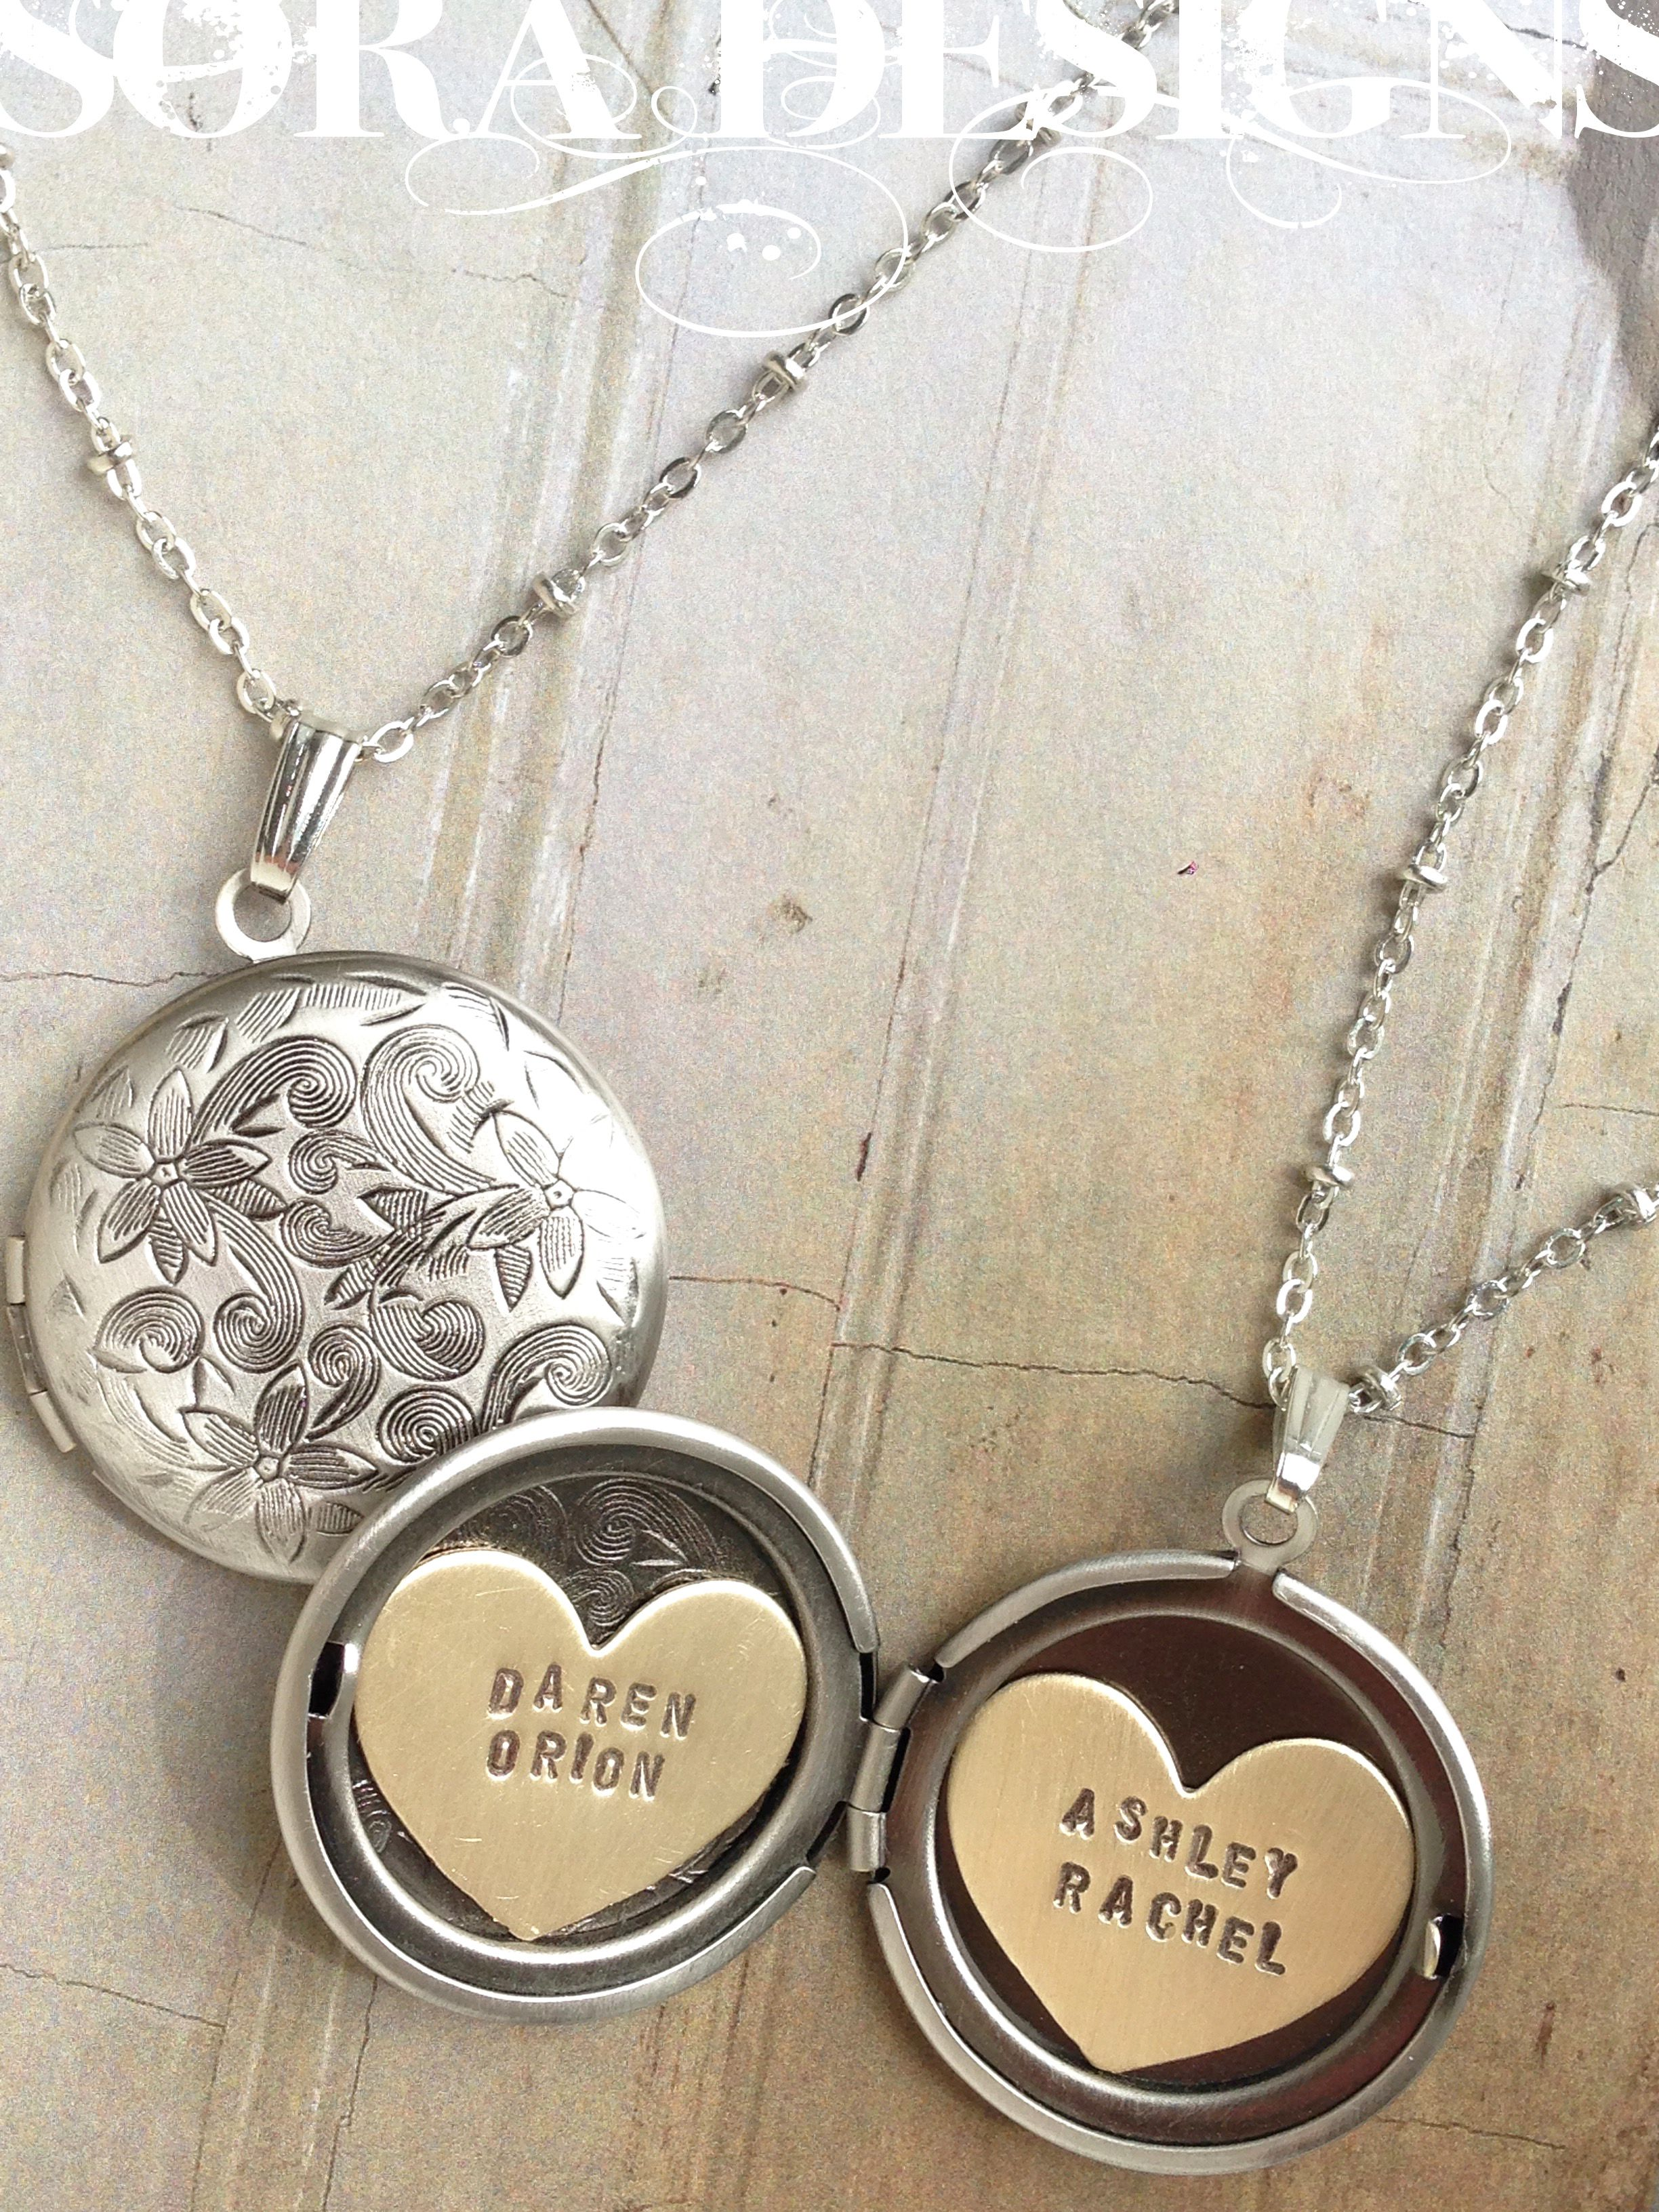 papier products silhouette mother kid child necklace lockets le studio